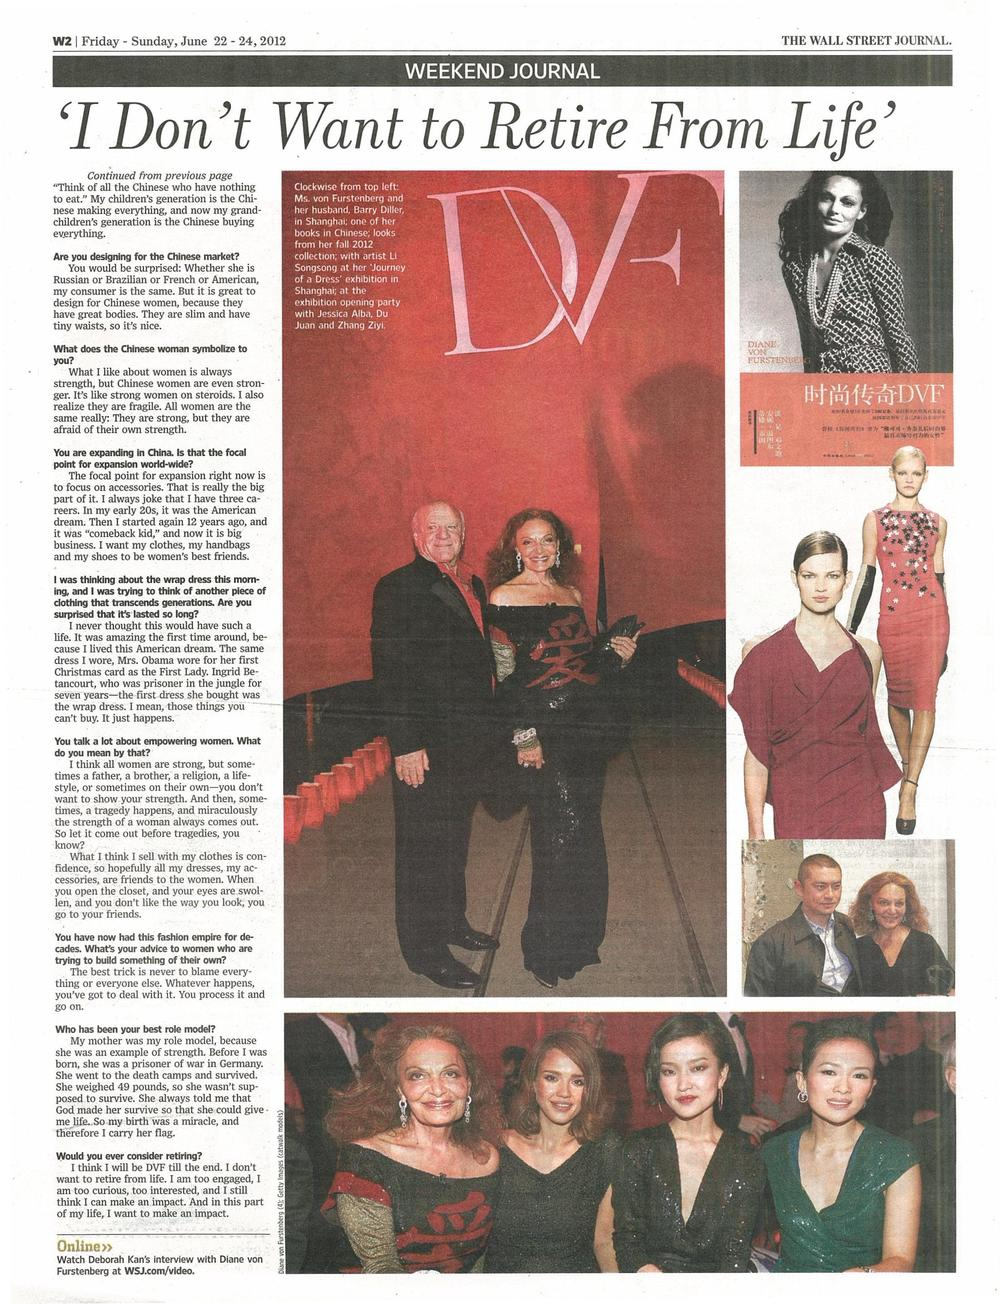 HK The Wall Street Journal Asia 02 - 22-24 Jun 12.jpg